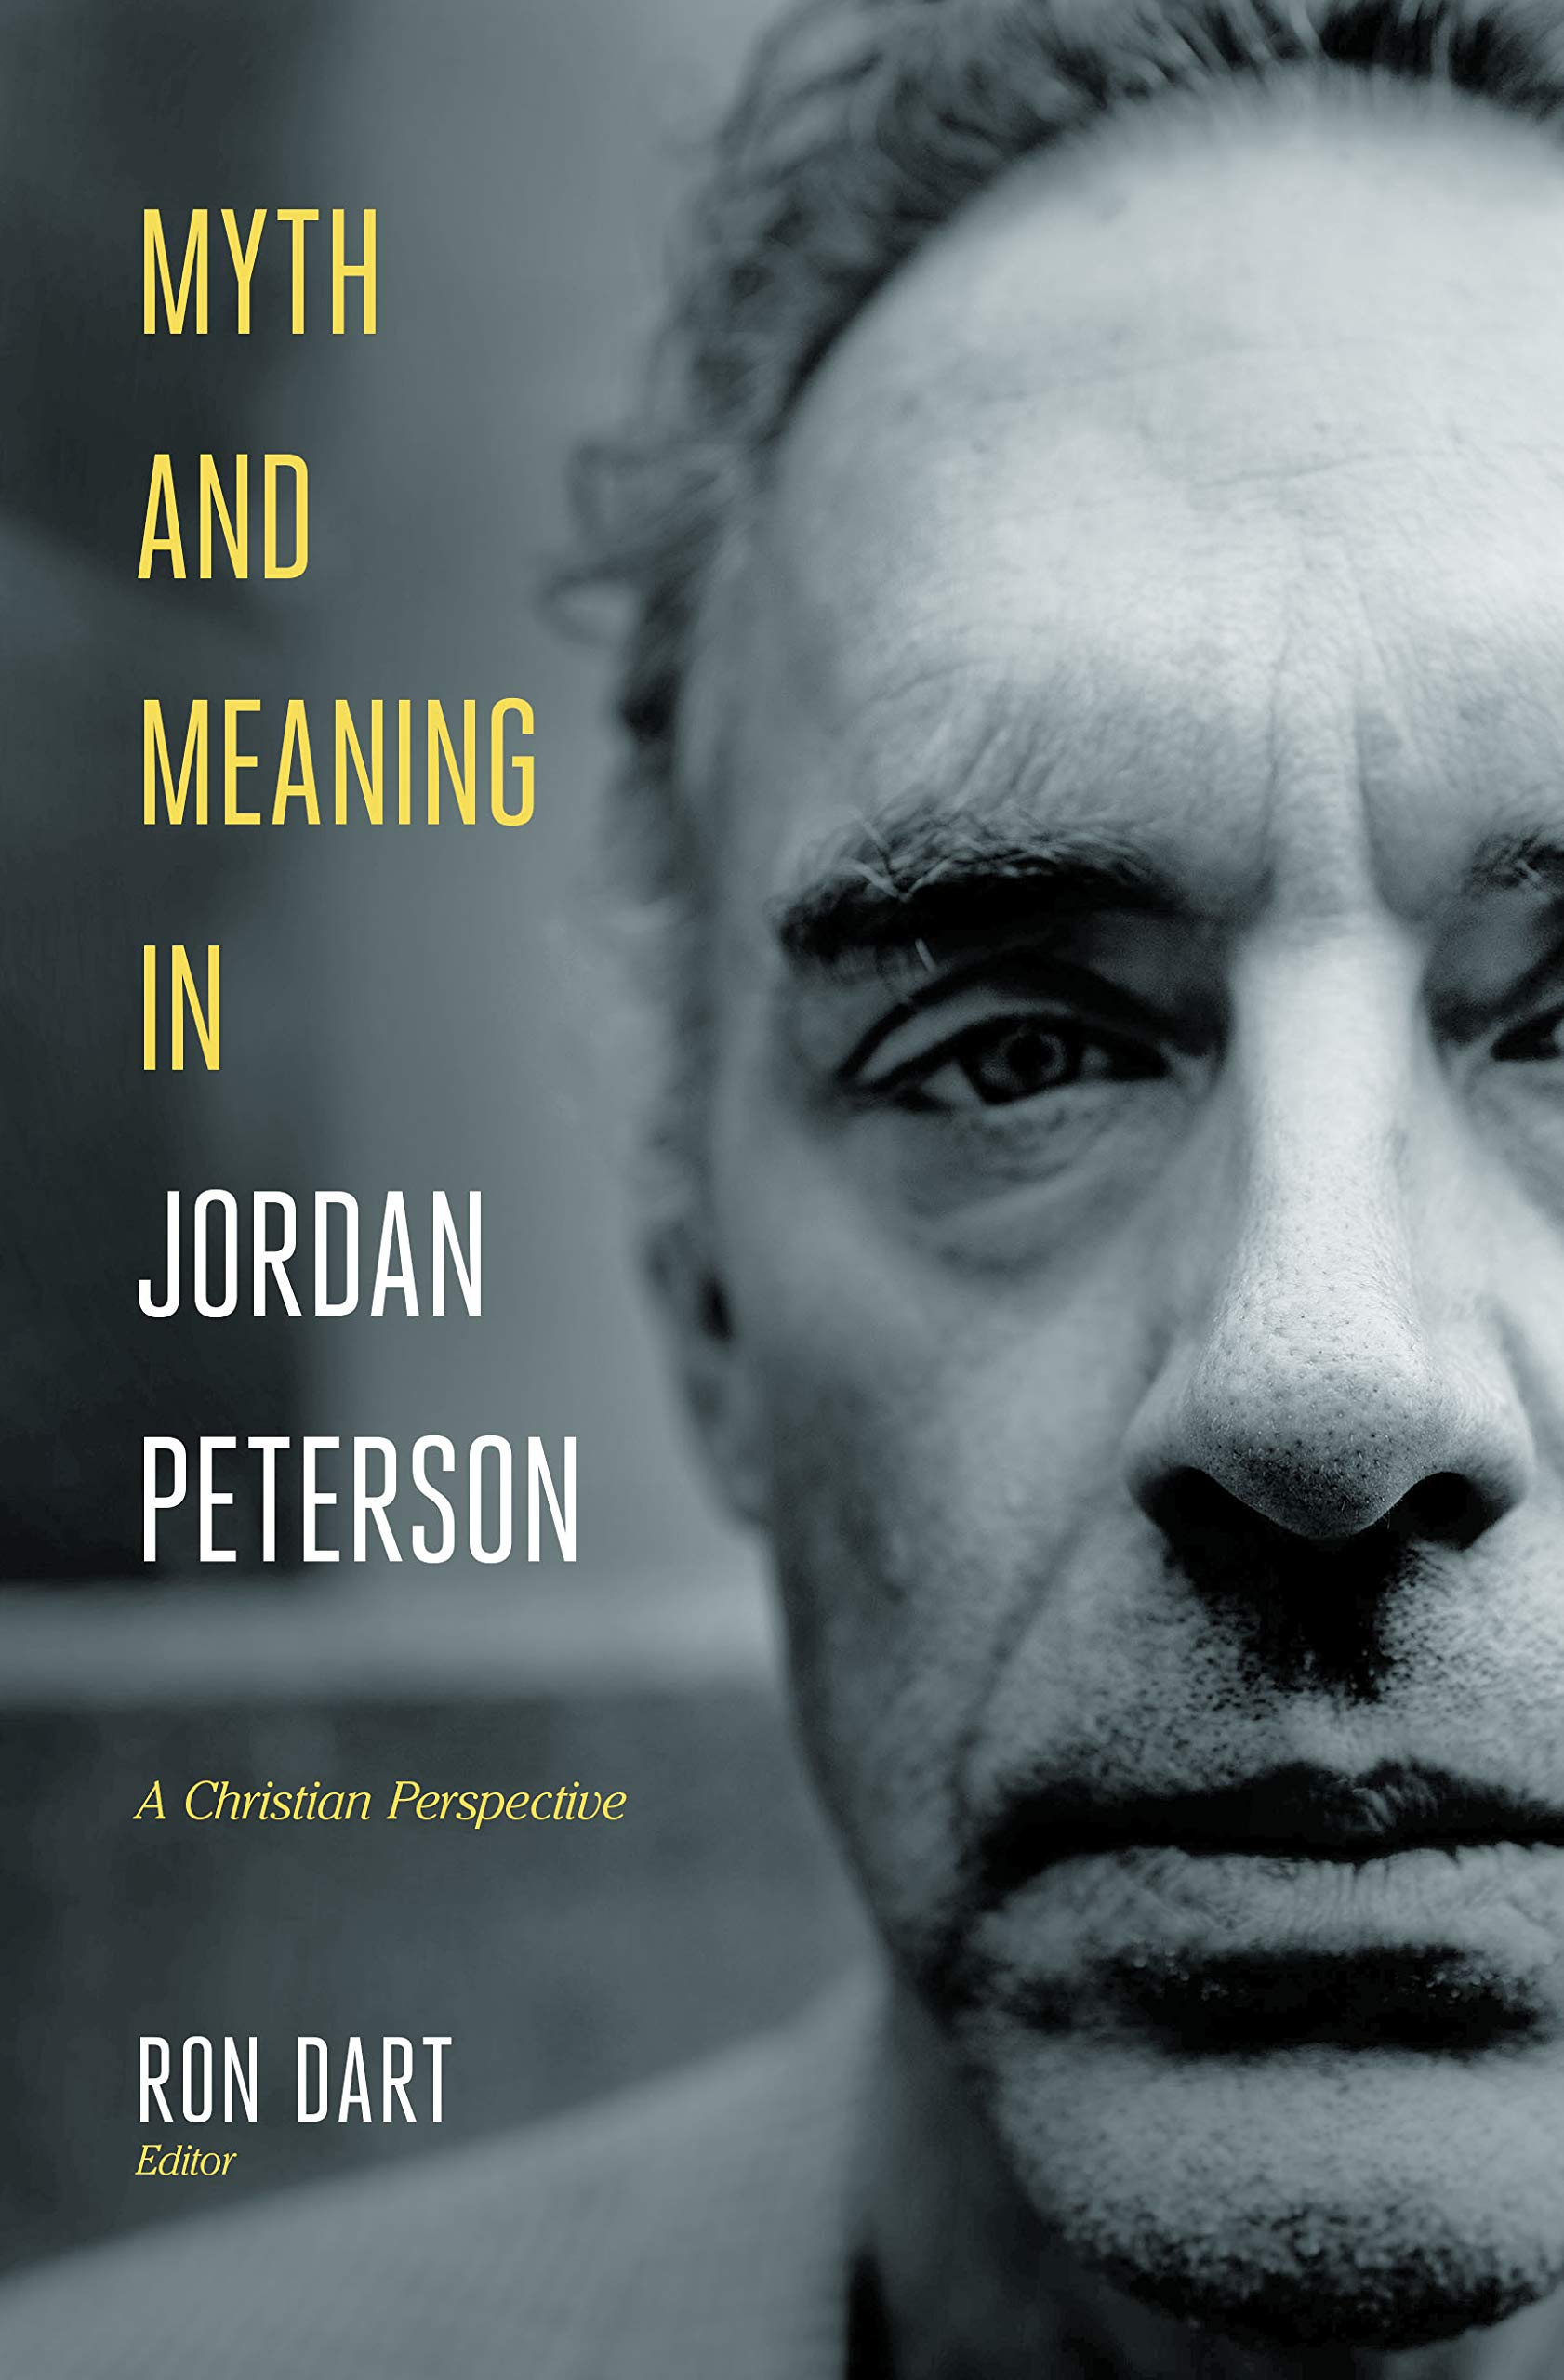 Mala suerte Mañana si puedes  Myth and Meaning in Jordan Peterson: A Christian Perspective: Dart, Ron:  9781683593621: Amazon.com: Books